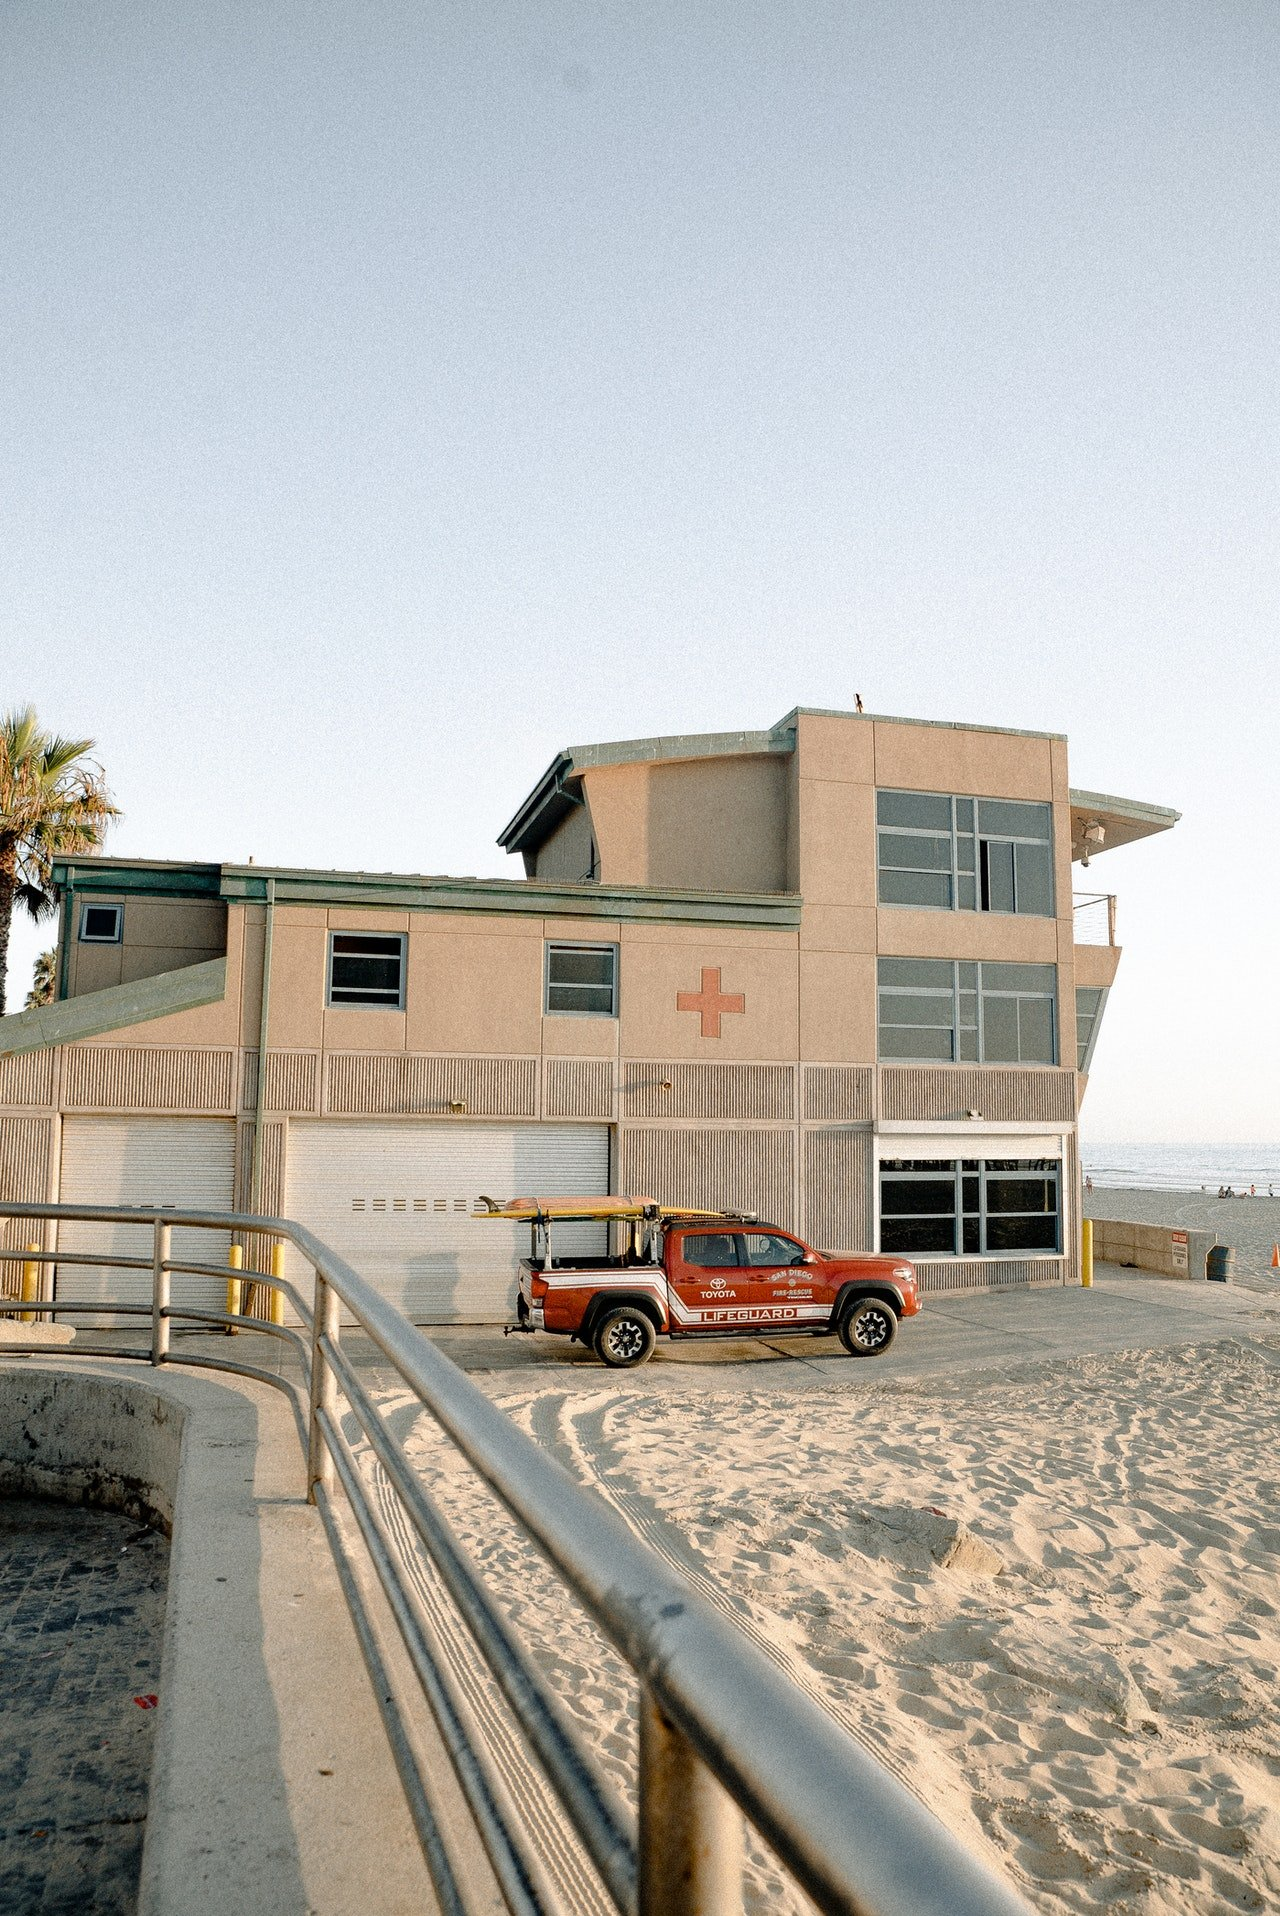 Outside view of a lifeguard station | Photo: Pexels